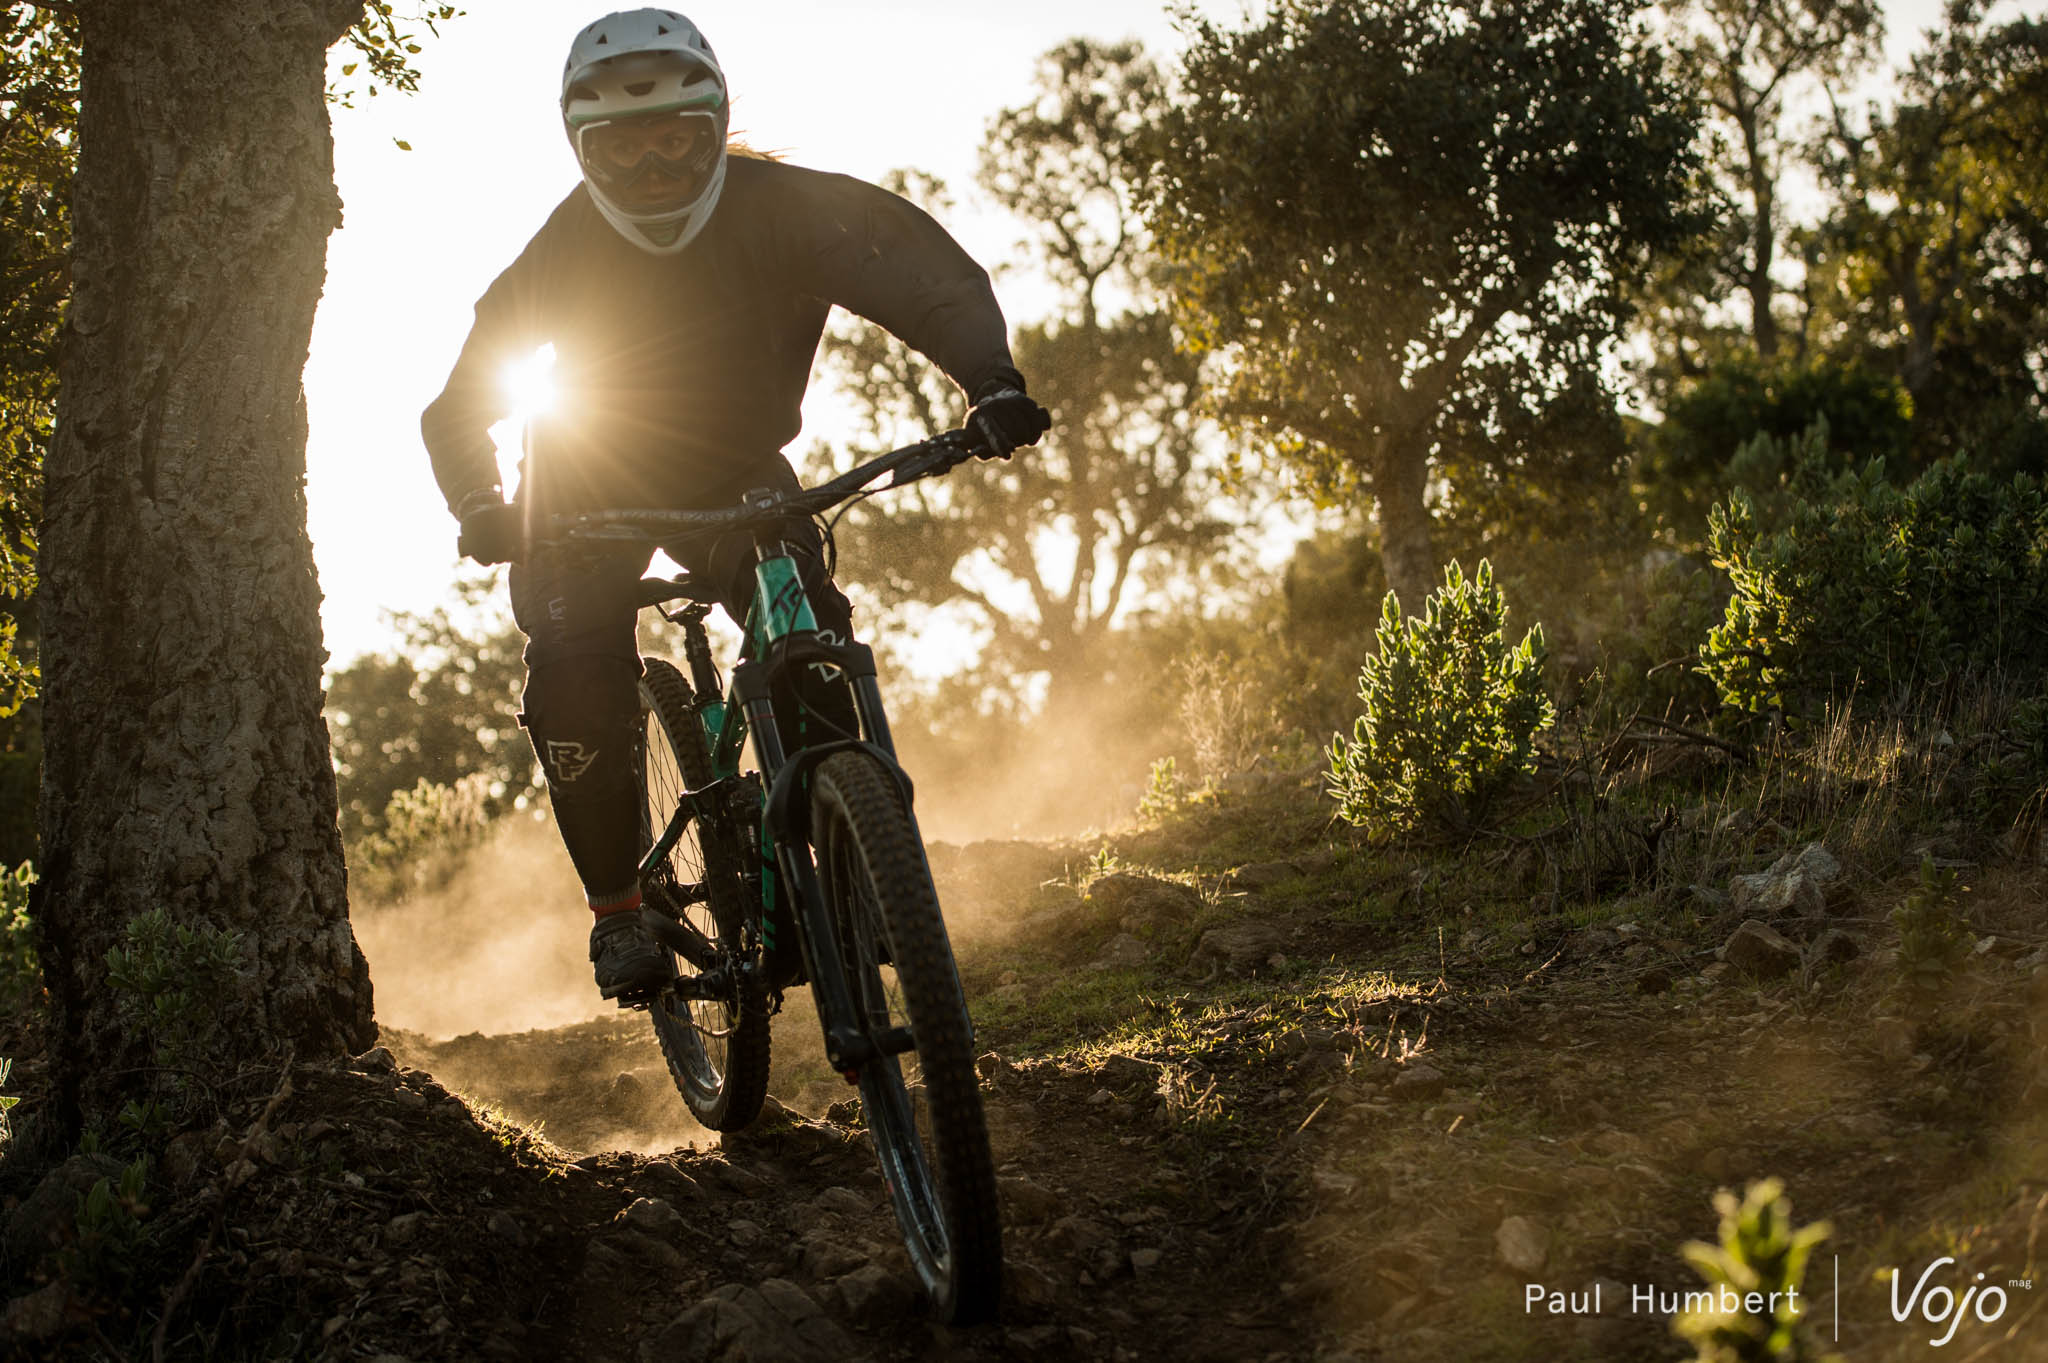 azur-bike-park-2017-vojo-paul-humbert-15